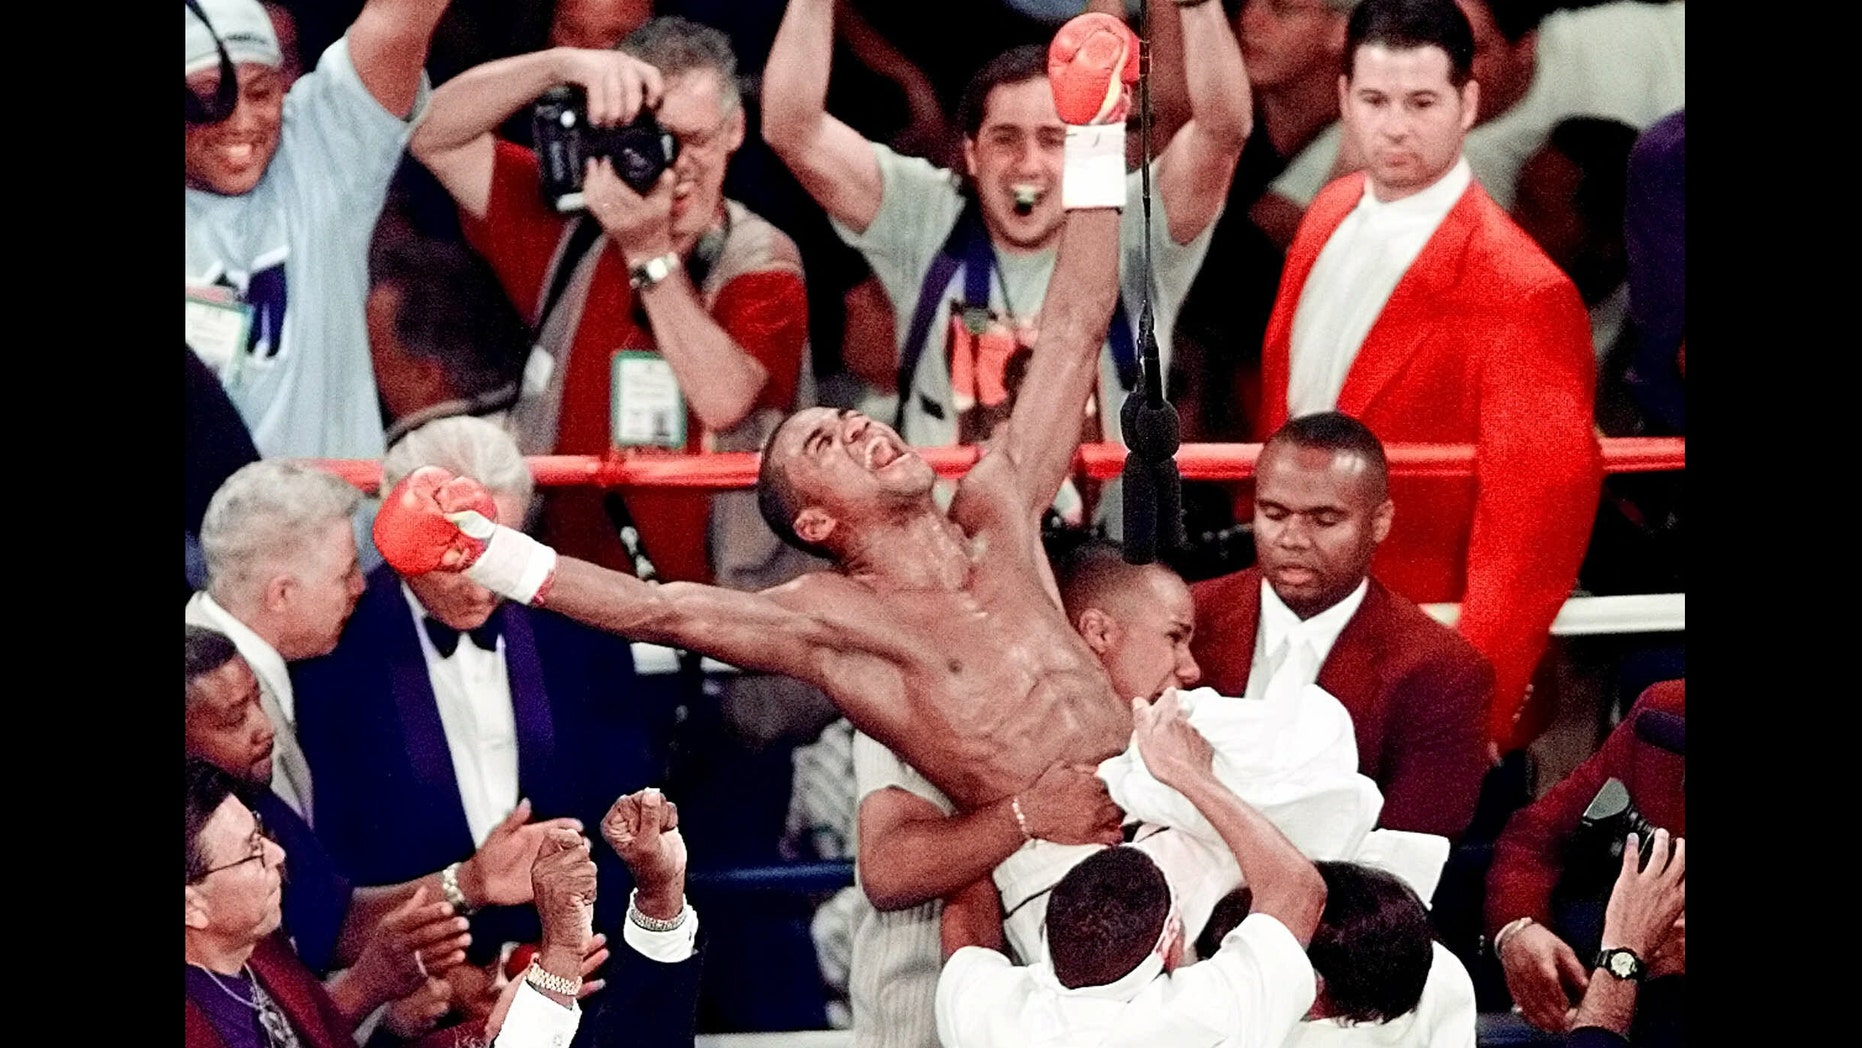 FILE - In this Sept. 18, 1999 file photo, Felix Trinidad is held up by his corner in after defeating Oscar De La Hoya by way of decision after 12 rounds, to win the WBC/IBF Welterweight Championship at the Mandalay Bay Events Center in Las Vegas. De La Hoya, Trinidad and Joe Calzaghe head the class of 2014 to be inducted into the International Boxing Hall of Fame. (AP Photo/Laura Rauch, File)